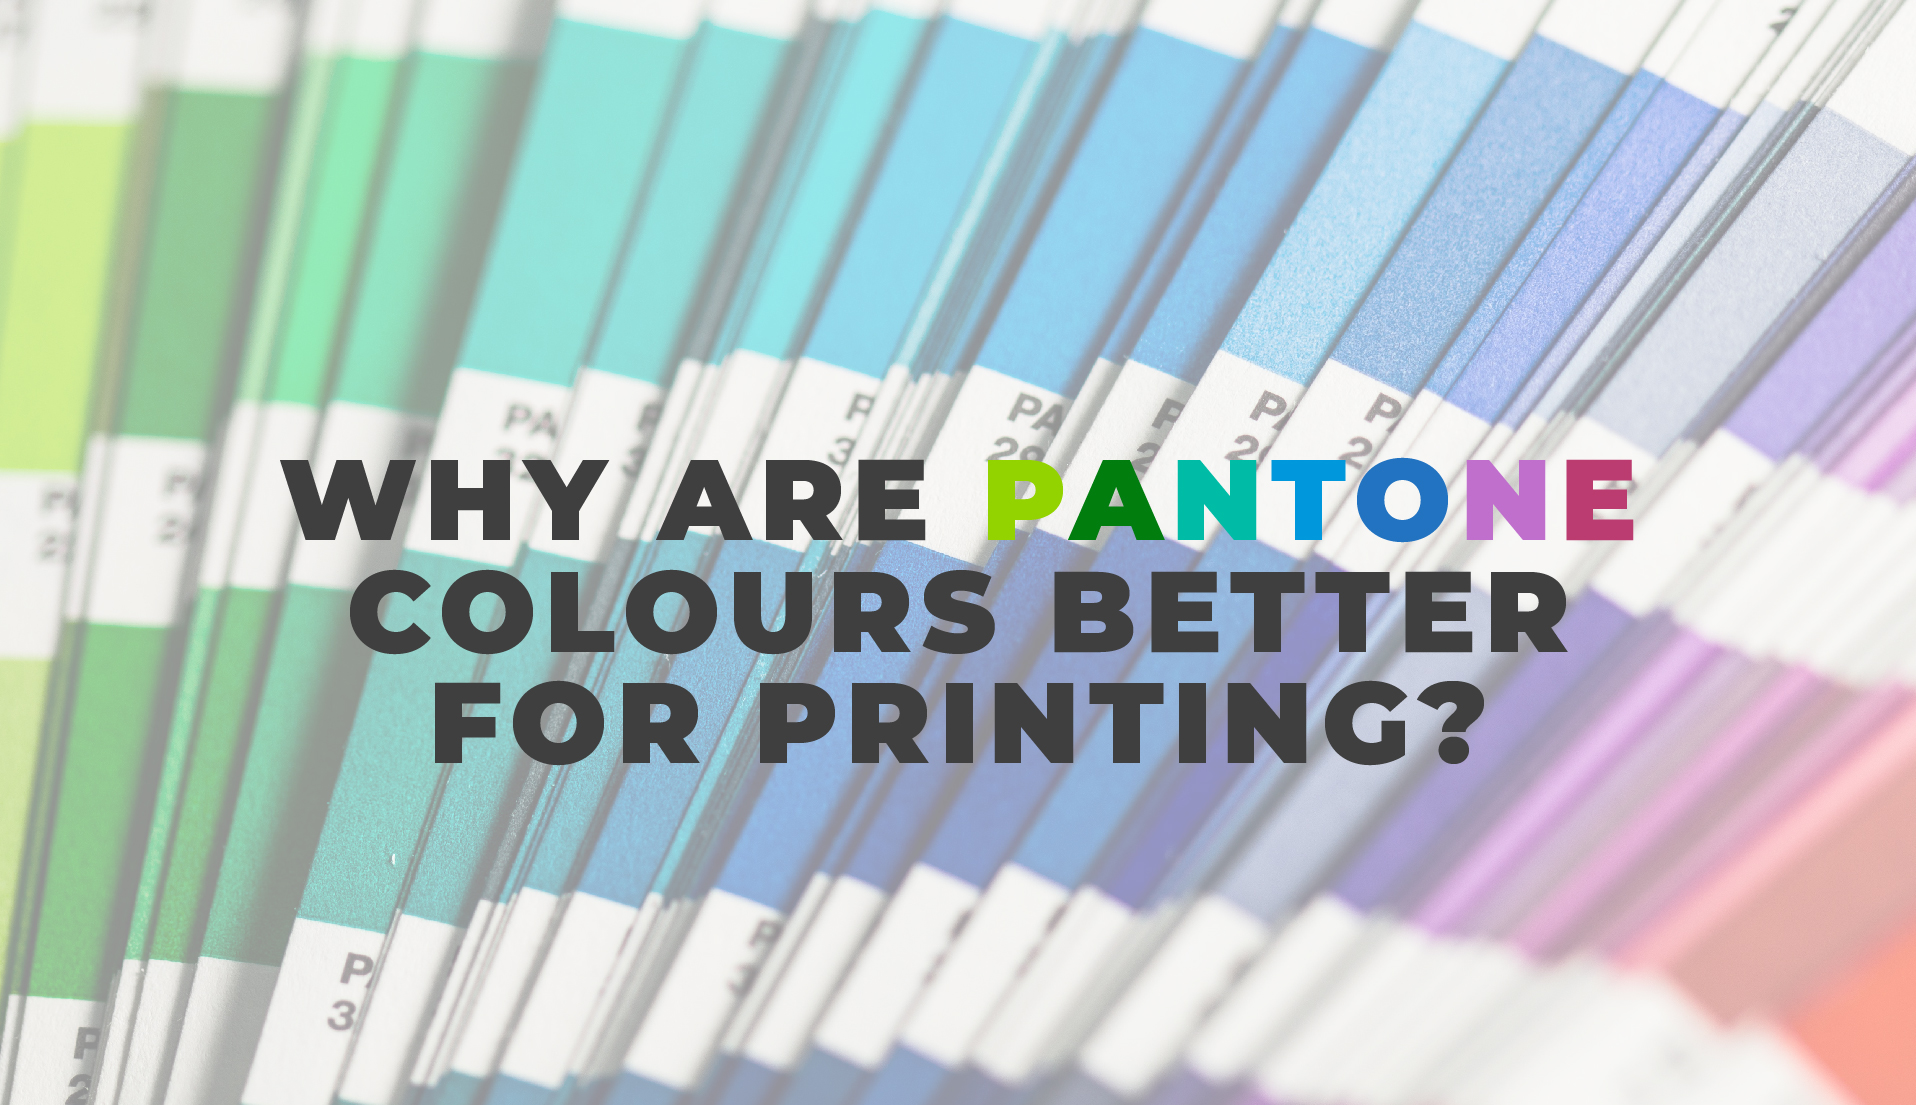 Why Are Pantone Colours Better For Printing?